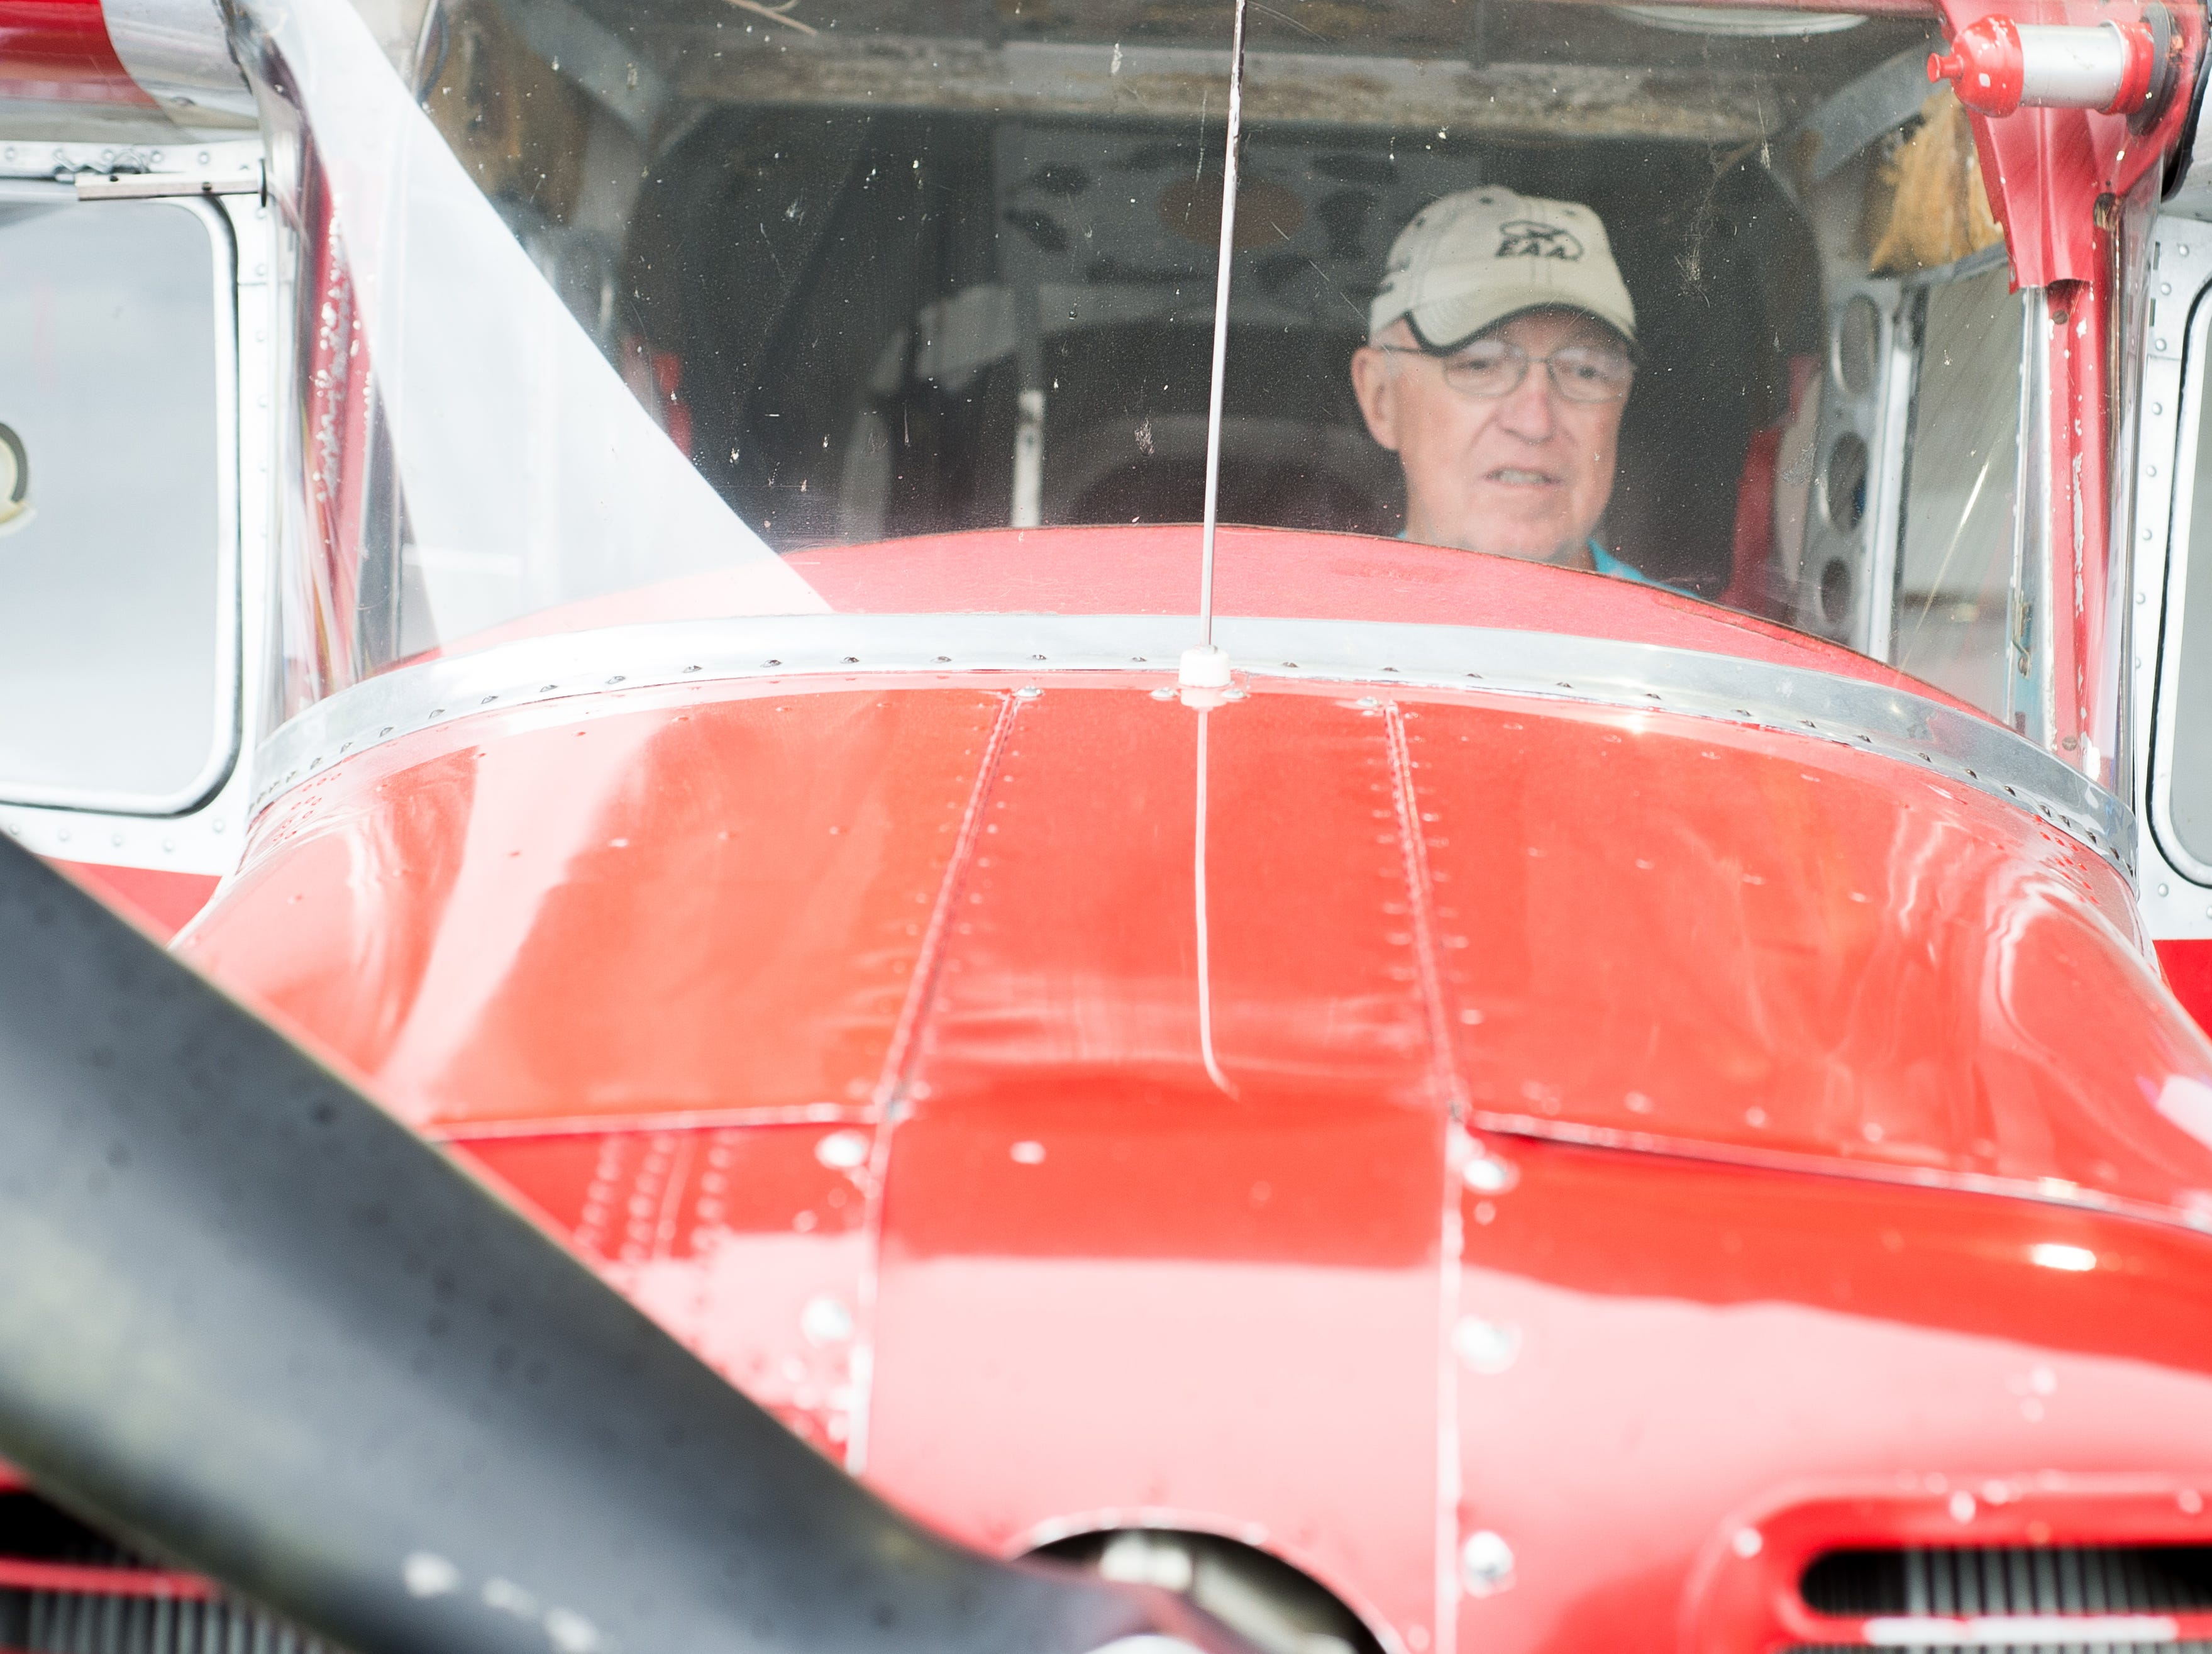 John Oldham checks out a historic aircraft during a Fly-In Breakfast at the Sumner County Regional Airport in Gallatin on Saturday, April 13.